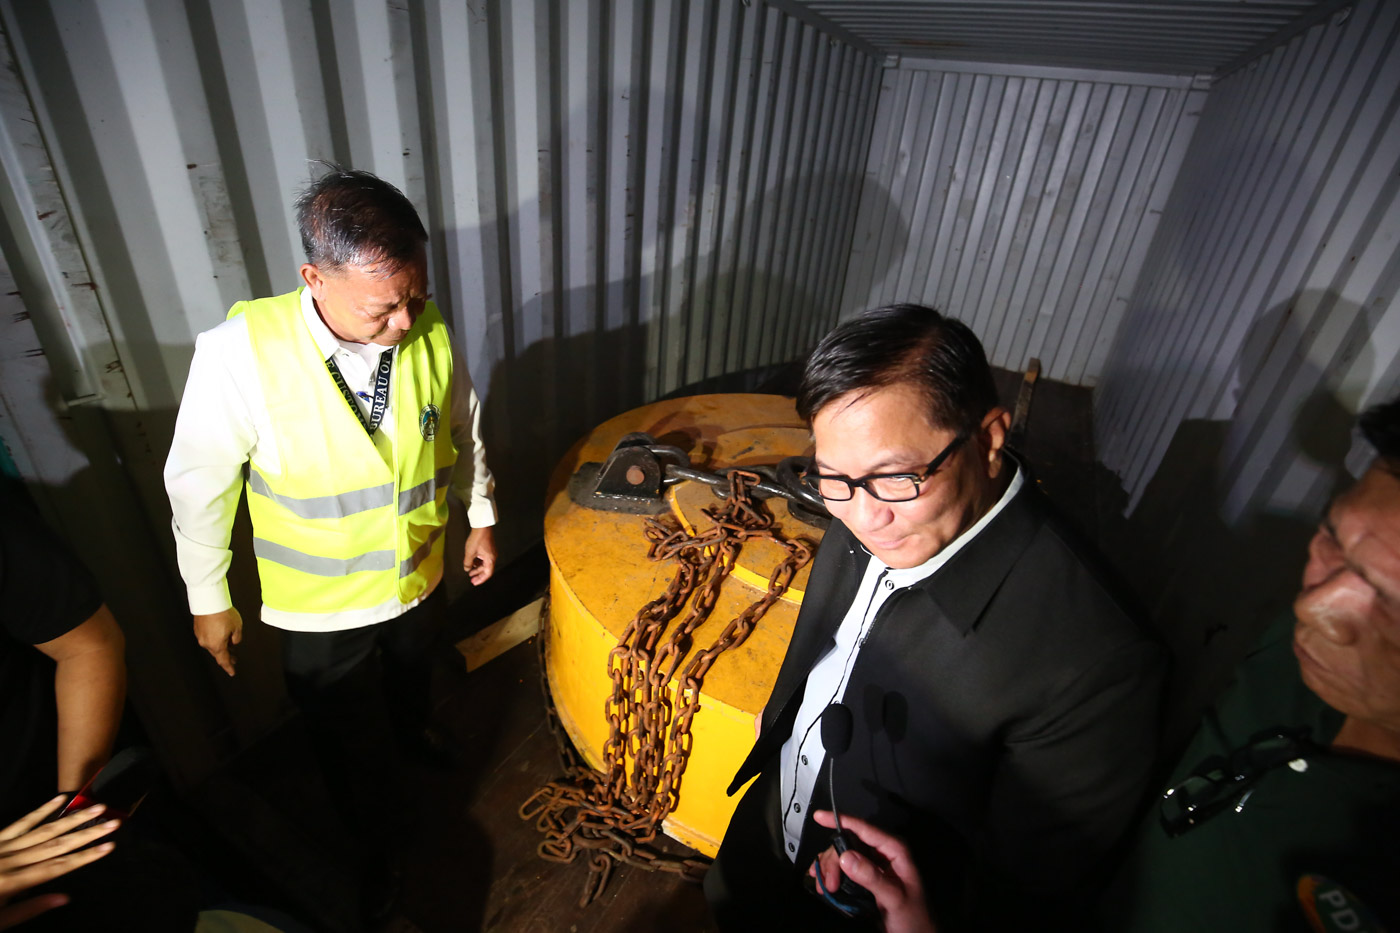 SHARED SUCCESS. Bureau of Customs commissioner Isidro Lapeu00f1a and PDEA Director General Aaron Aquino extract the alleged shabu worth P3.4 billion inside steel cases during a press conference at the Manila International Container Port (MICP) in Port Area, Manila on August 7, 2018. Photo by Ben Nabong/Rappler